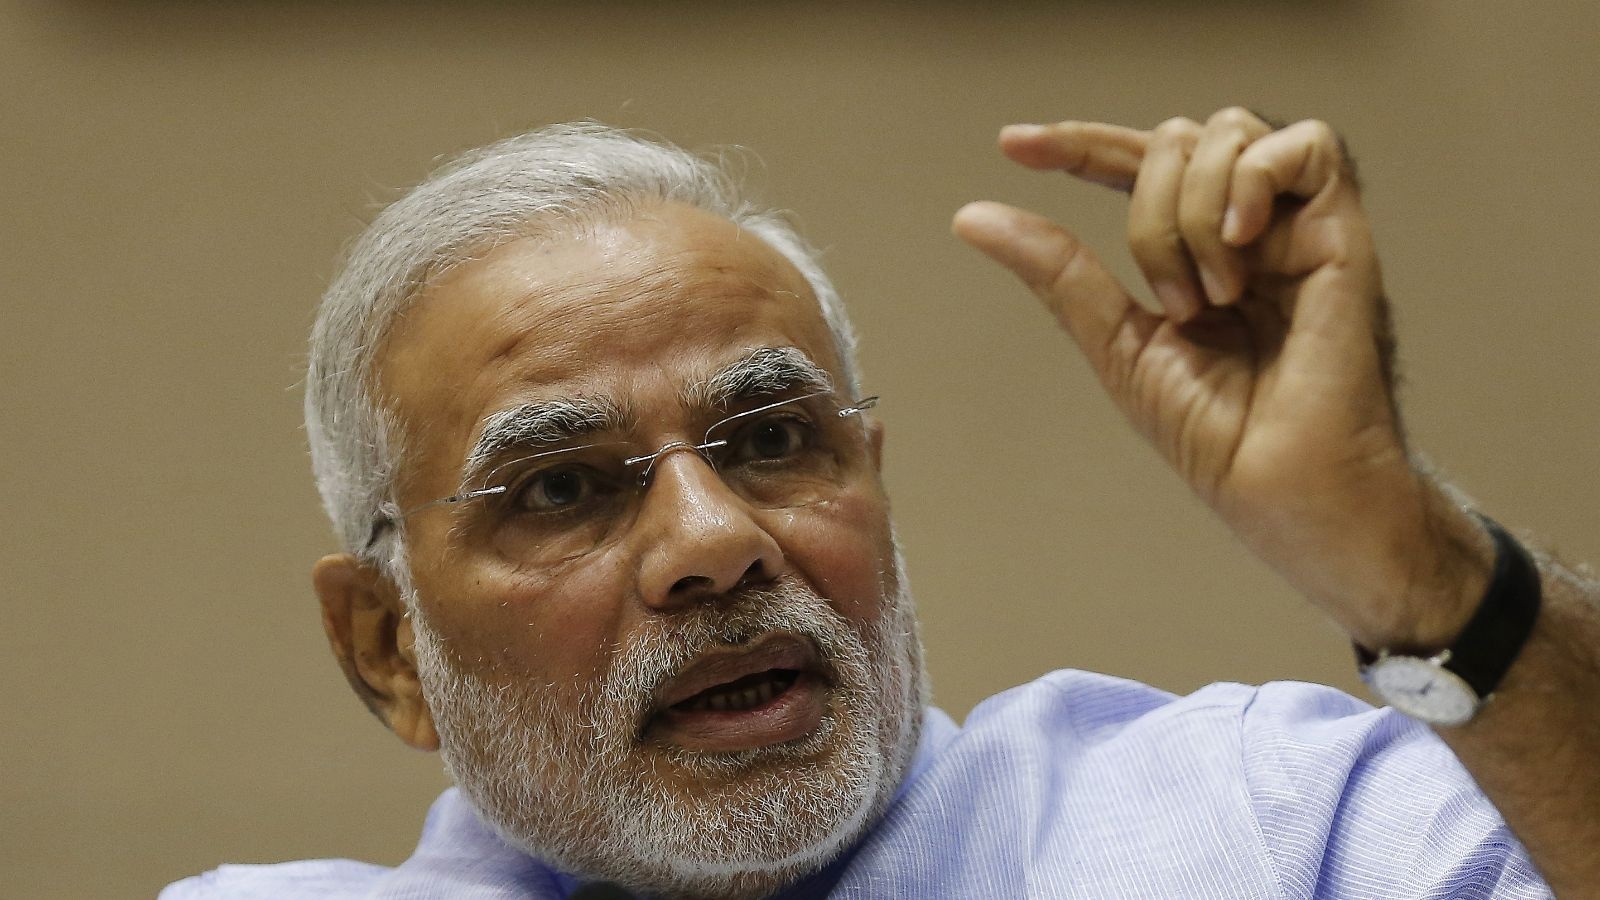 Indian Prime Minister Narendra Modi speaks during the launch of the Jan Dhan Yojana, or the Scheme for People's Wealth, in New Delhi August 28, 2014. Under the banking scheme, account holders would get a debit card and accident insurance cover of up to 100,000 rupees ($1,654). They would also get an overdraft facility of up to 5,000 Indian rupees.